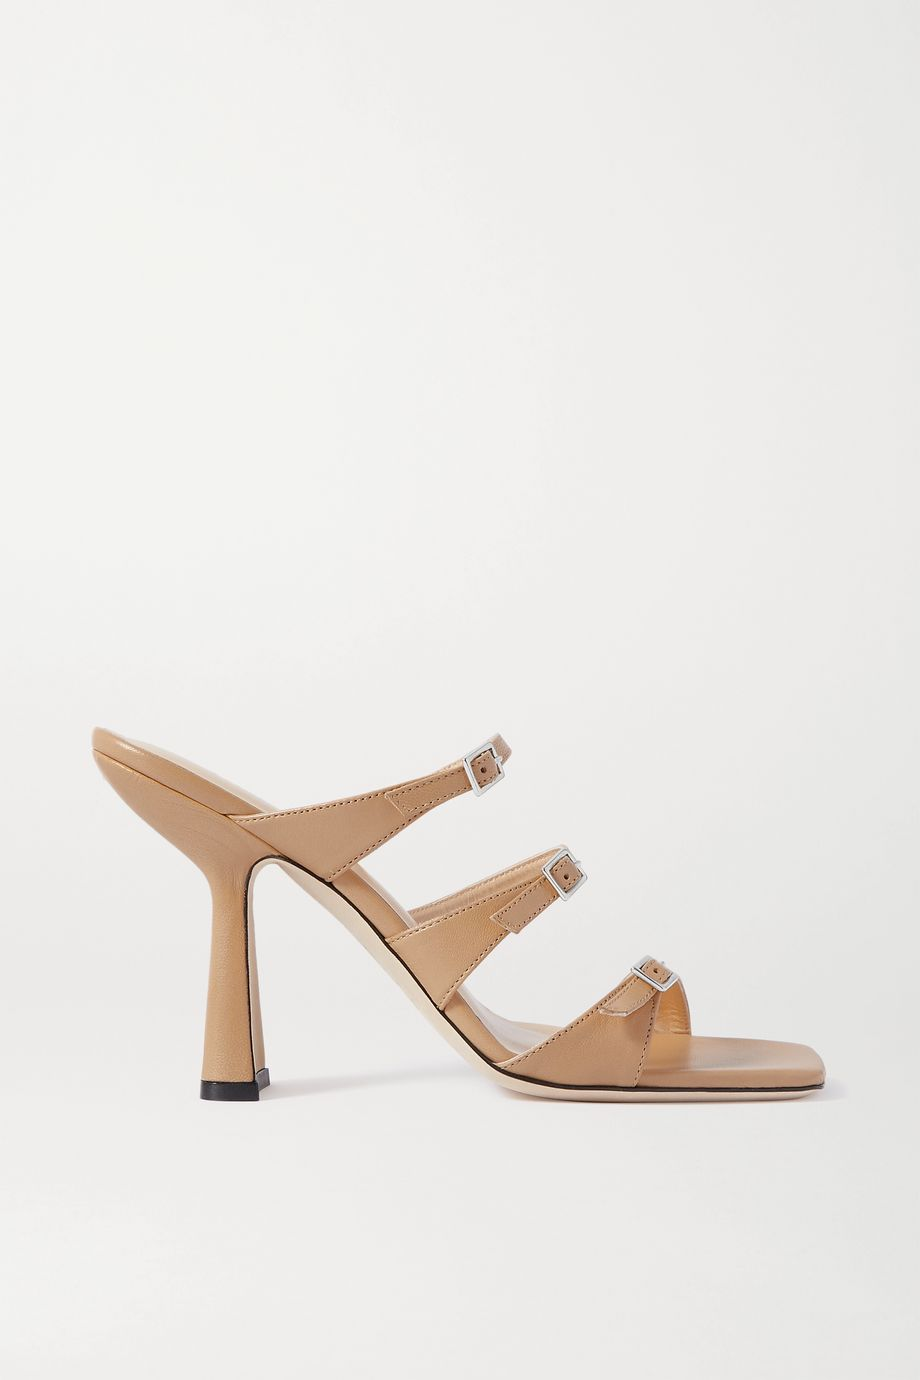 BY FAR Malene buckled leather mules